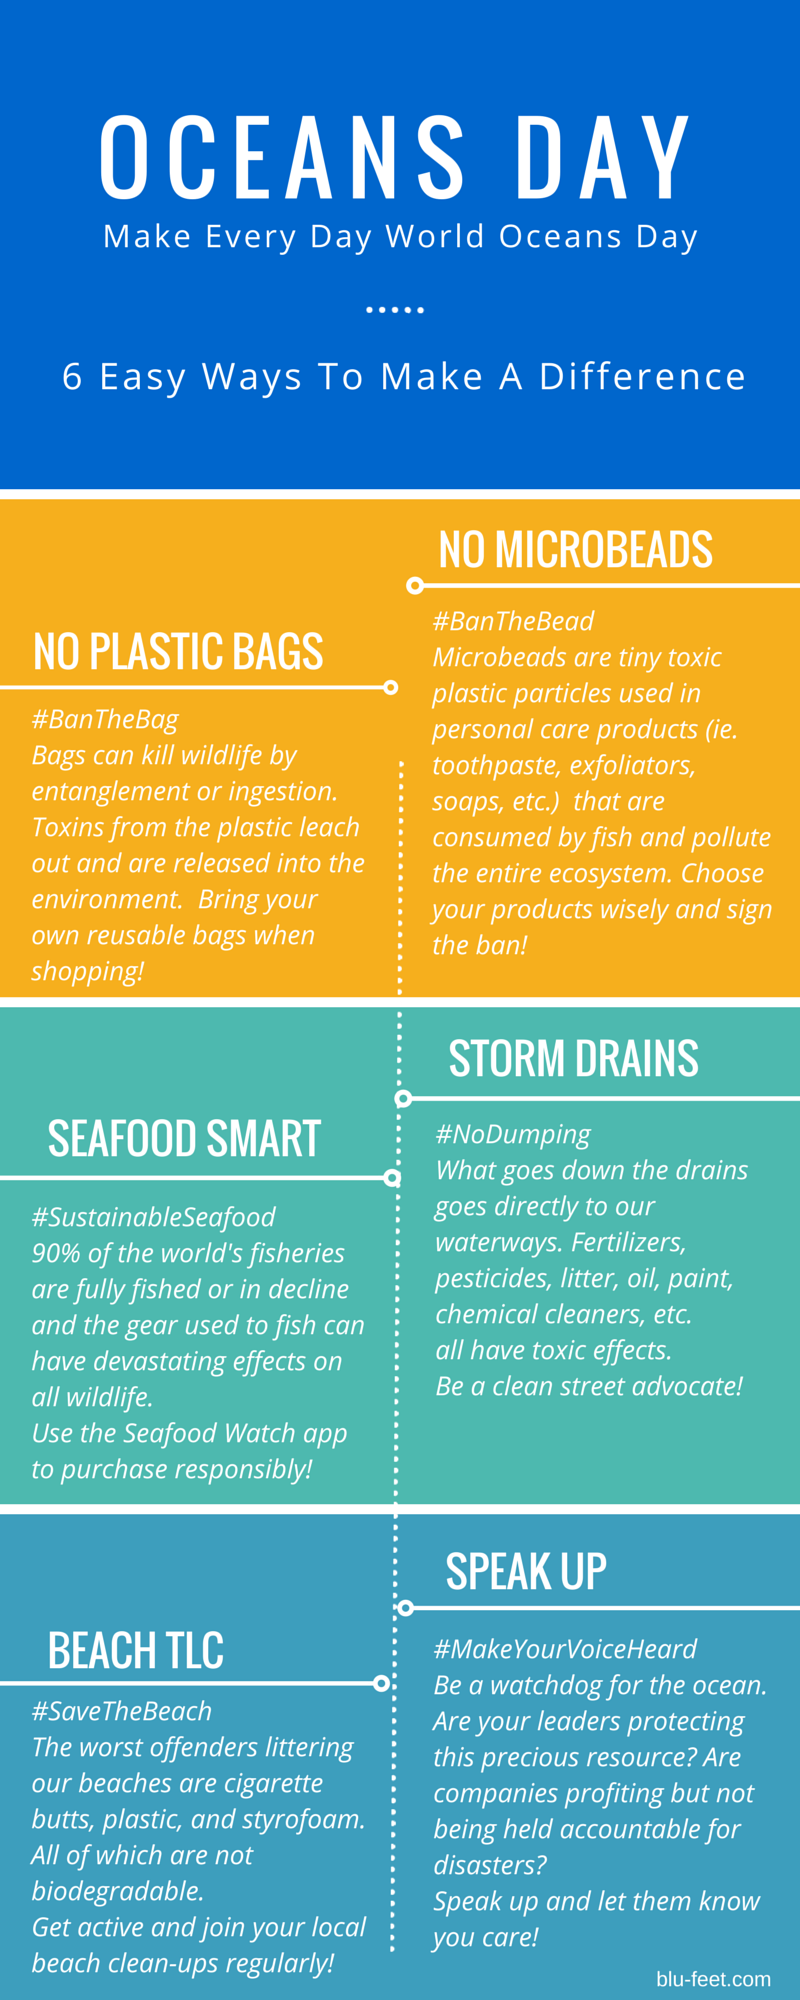 Easy-ways-to-make-a-difference-WorldOceansDay-ocean-eco-6